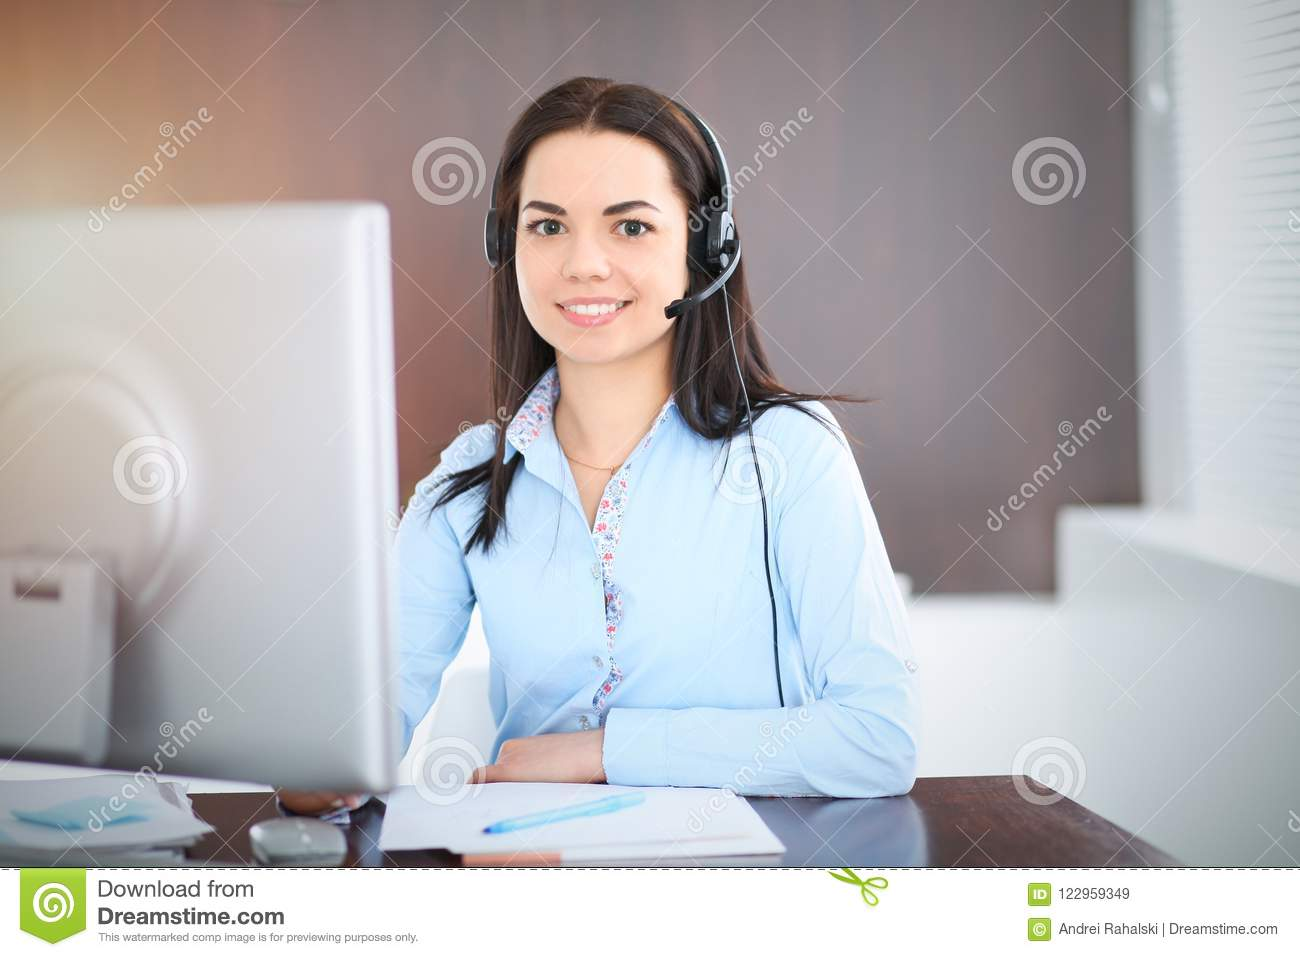 Young brunette business woman looks like a student girl working in office. Hispanic or latin american girl talking by